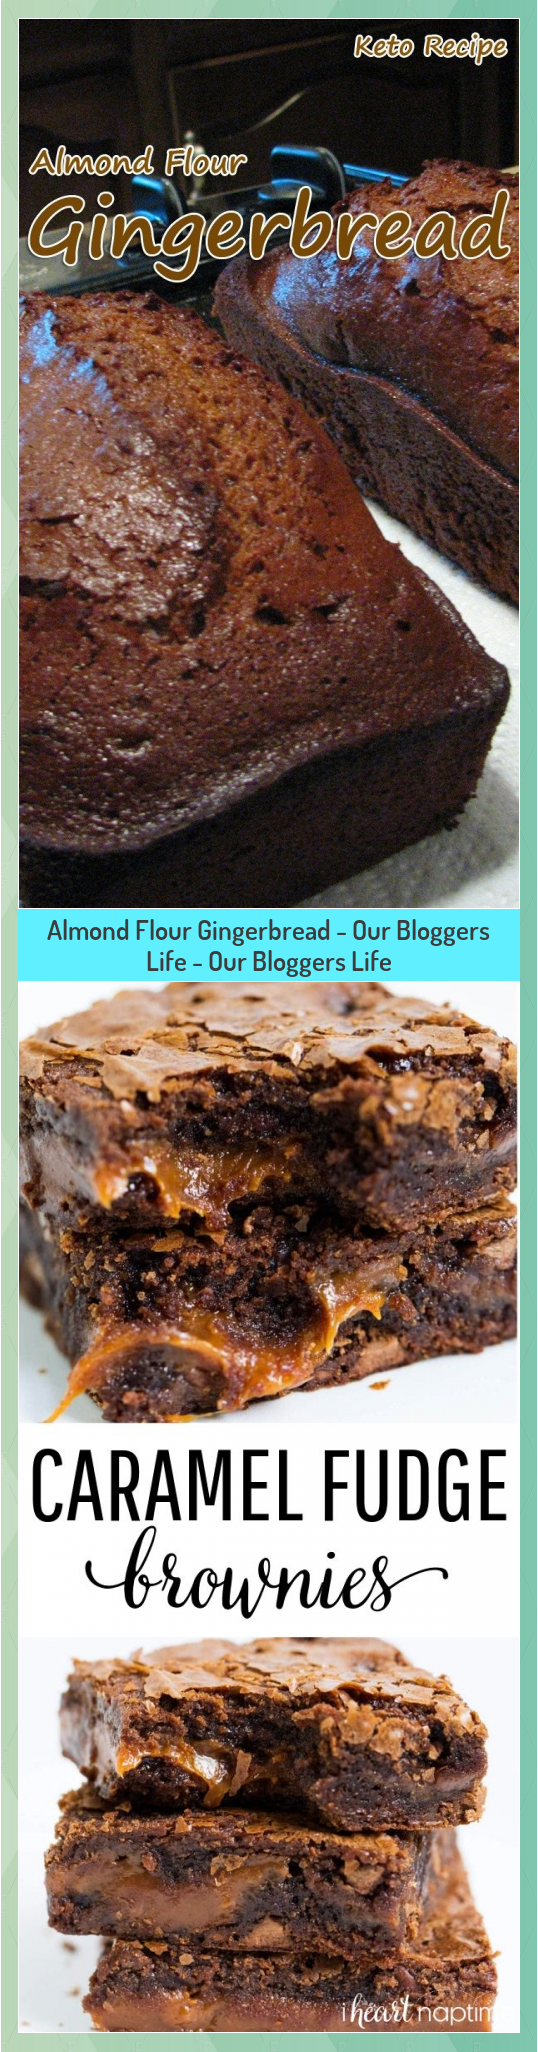 Almond Flour Gingerbread - Our Bloggers Life - Our Bloggers Life #Almond #Bloggers #Flour #Gingerbread #Life